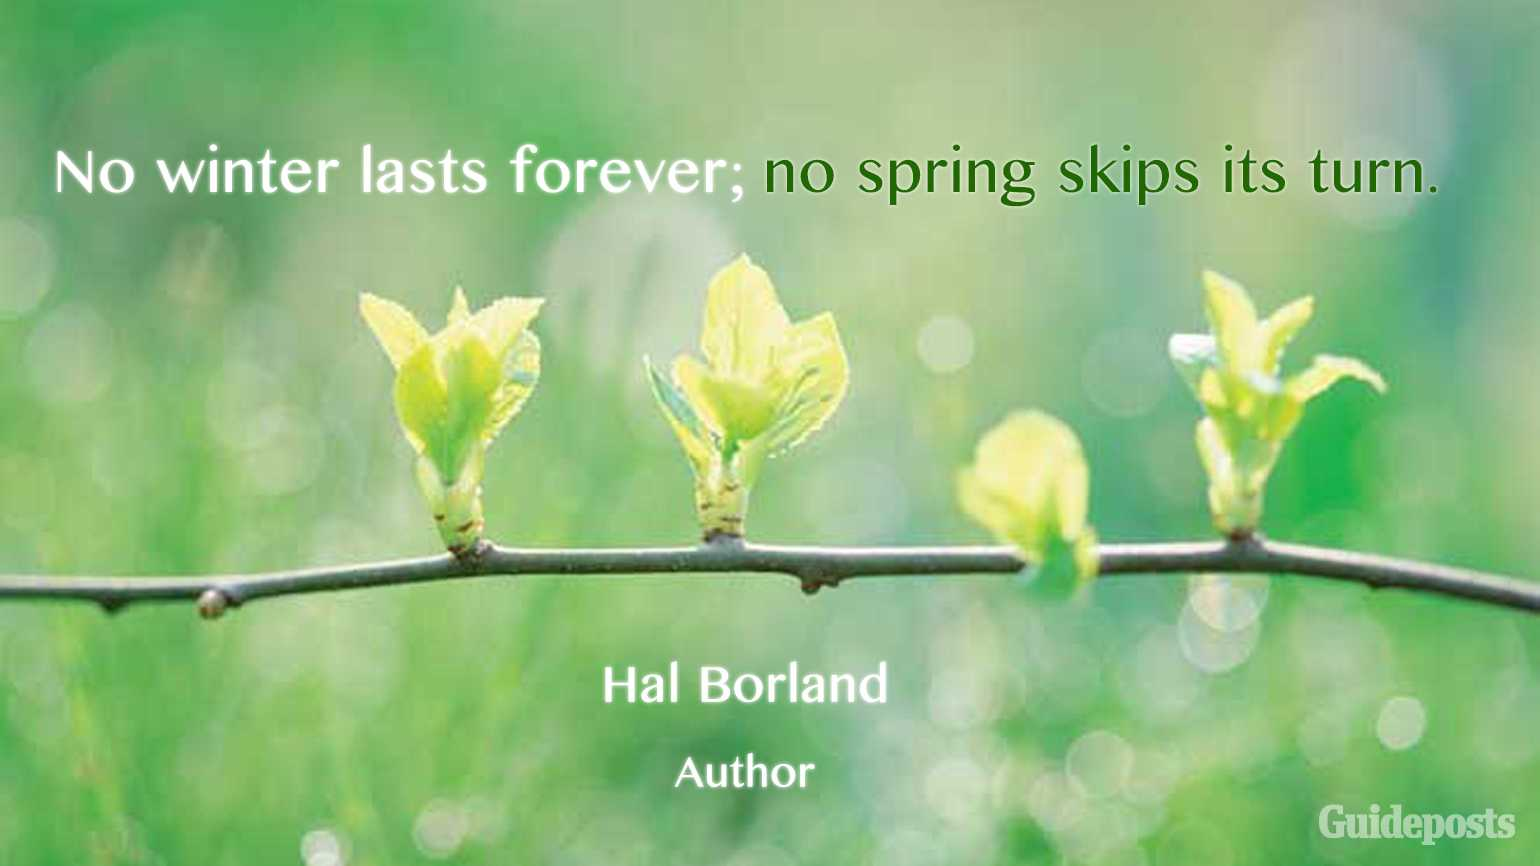 Inspiring Quotes for Spring | Guideposts